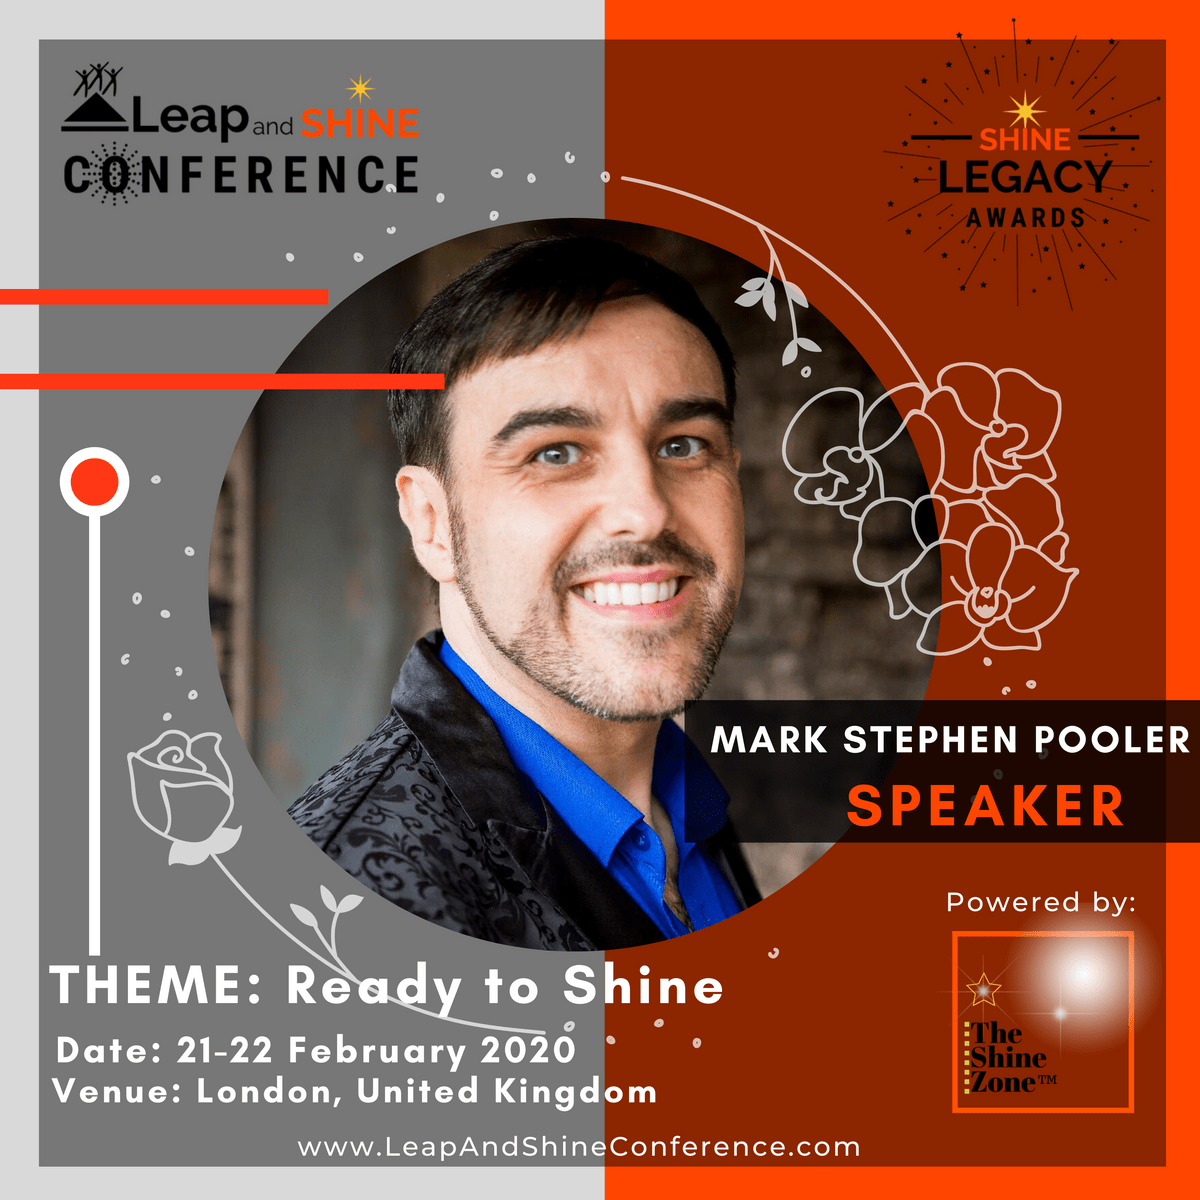 Mark Stephen Pooler is Speaking at Leap And Shine Conference 2020